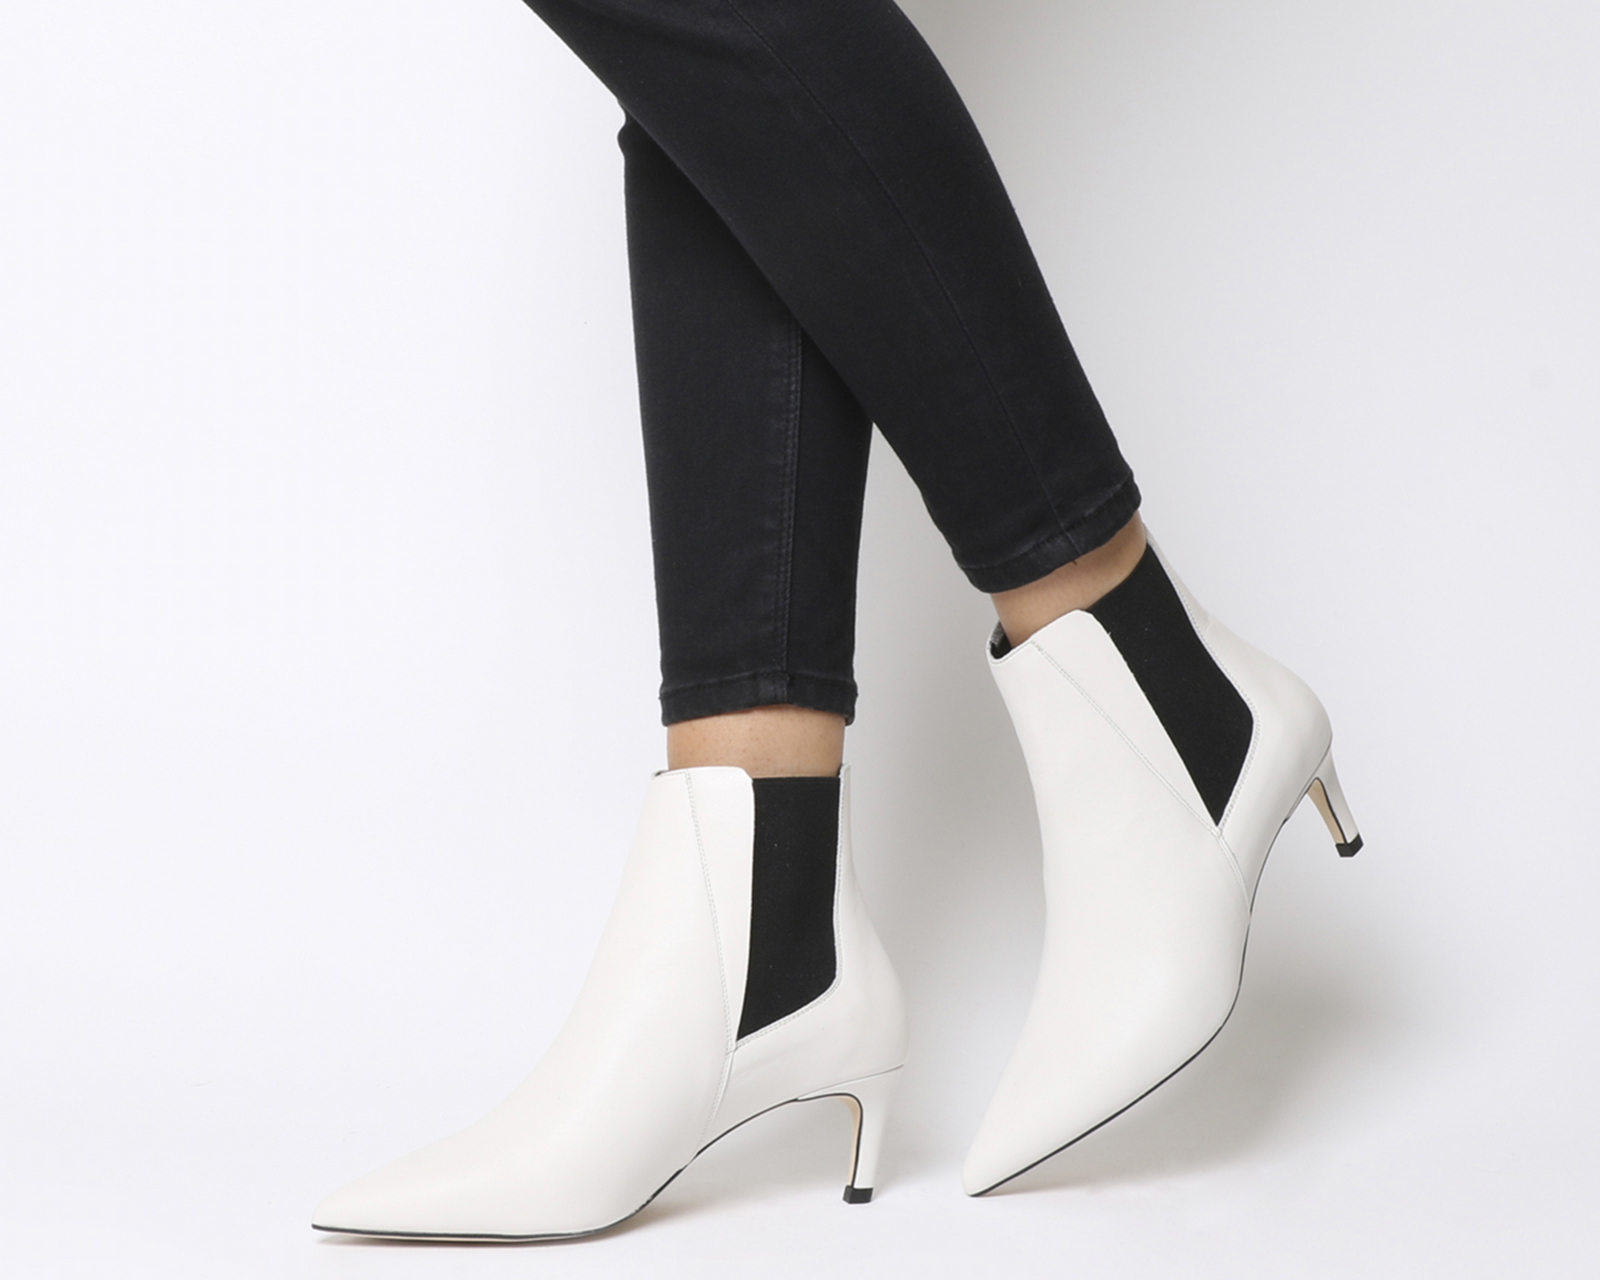 e1de11250f3 Sentinel Womens Office Attire Kitten Heel Chelsea Boots White Leather Boots